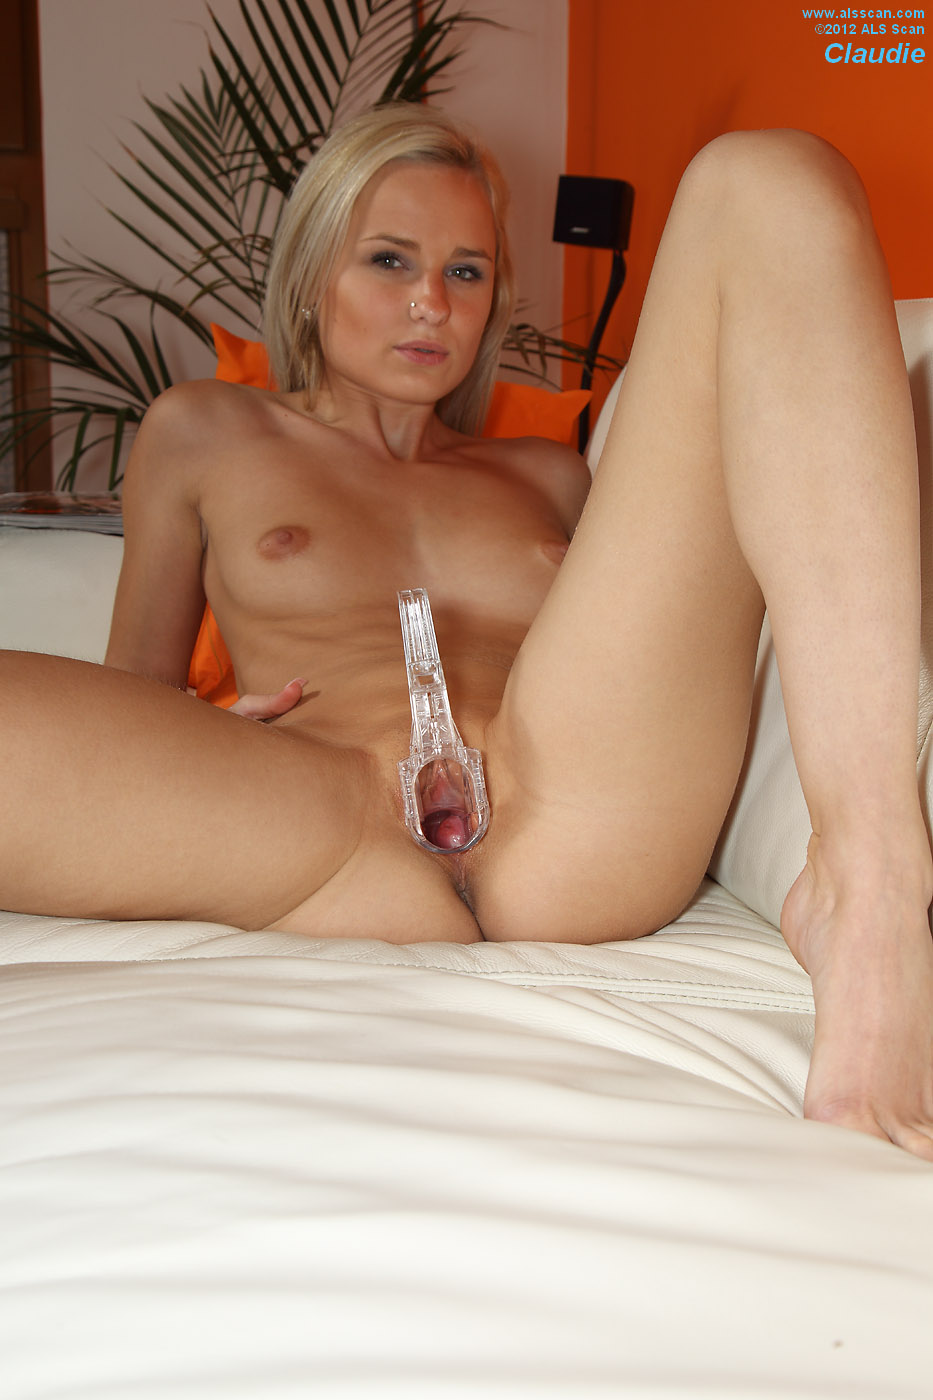 PinkFineArt  Claudie Shows Cervix from ALS Scan